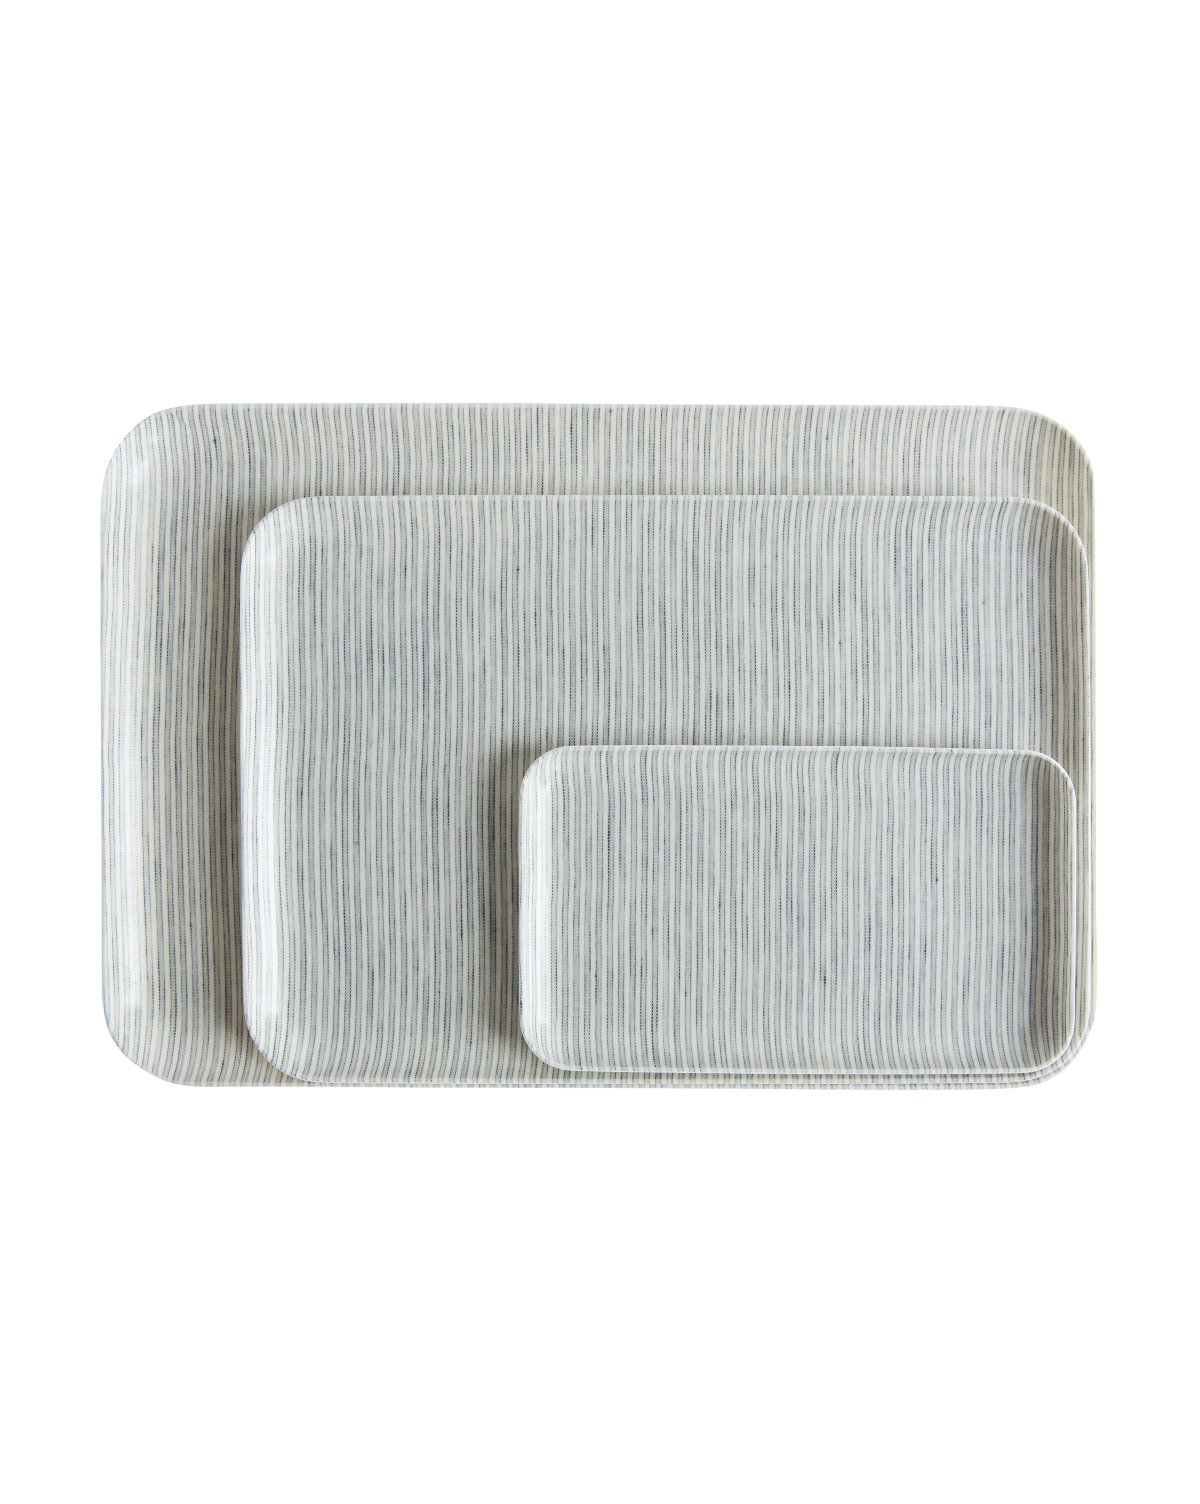 Thin_Stripe_Linen_Tray_1.jpg